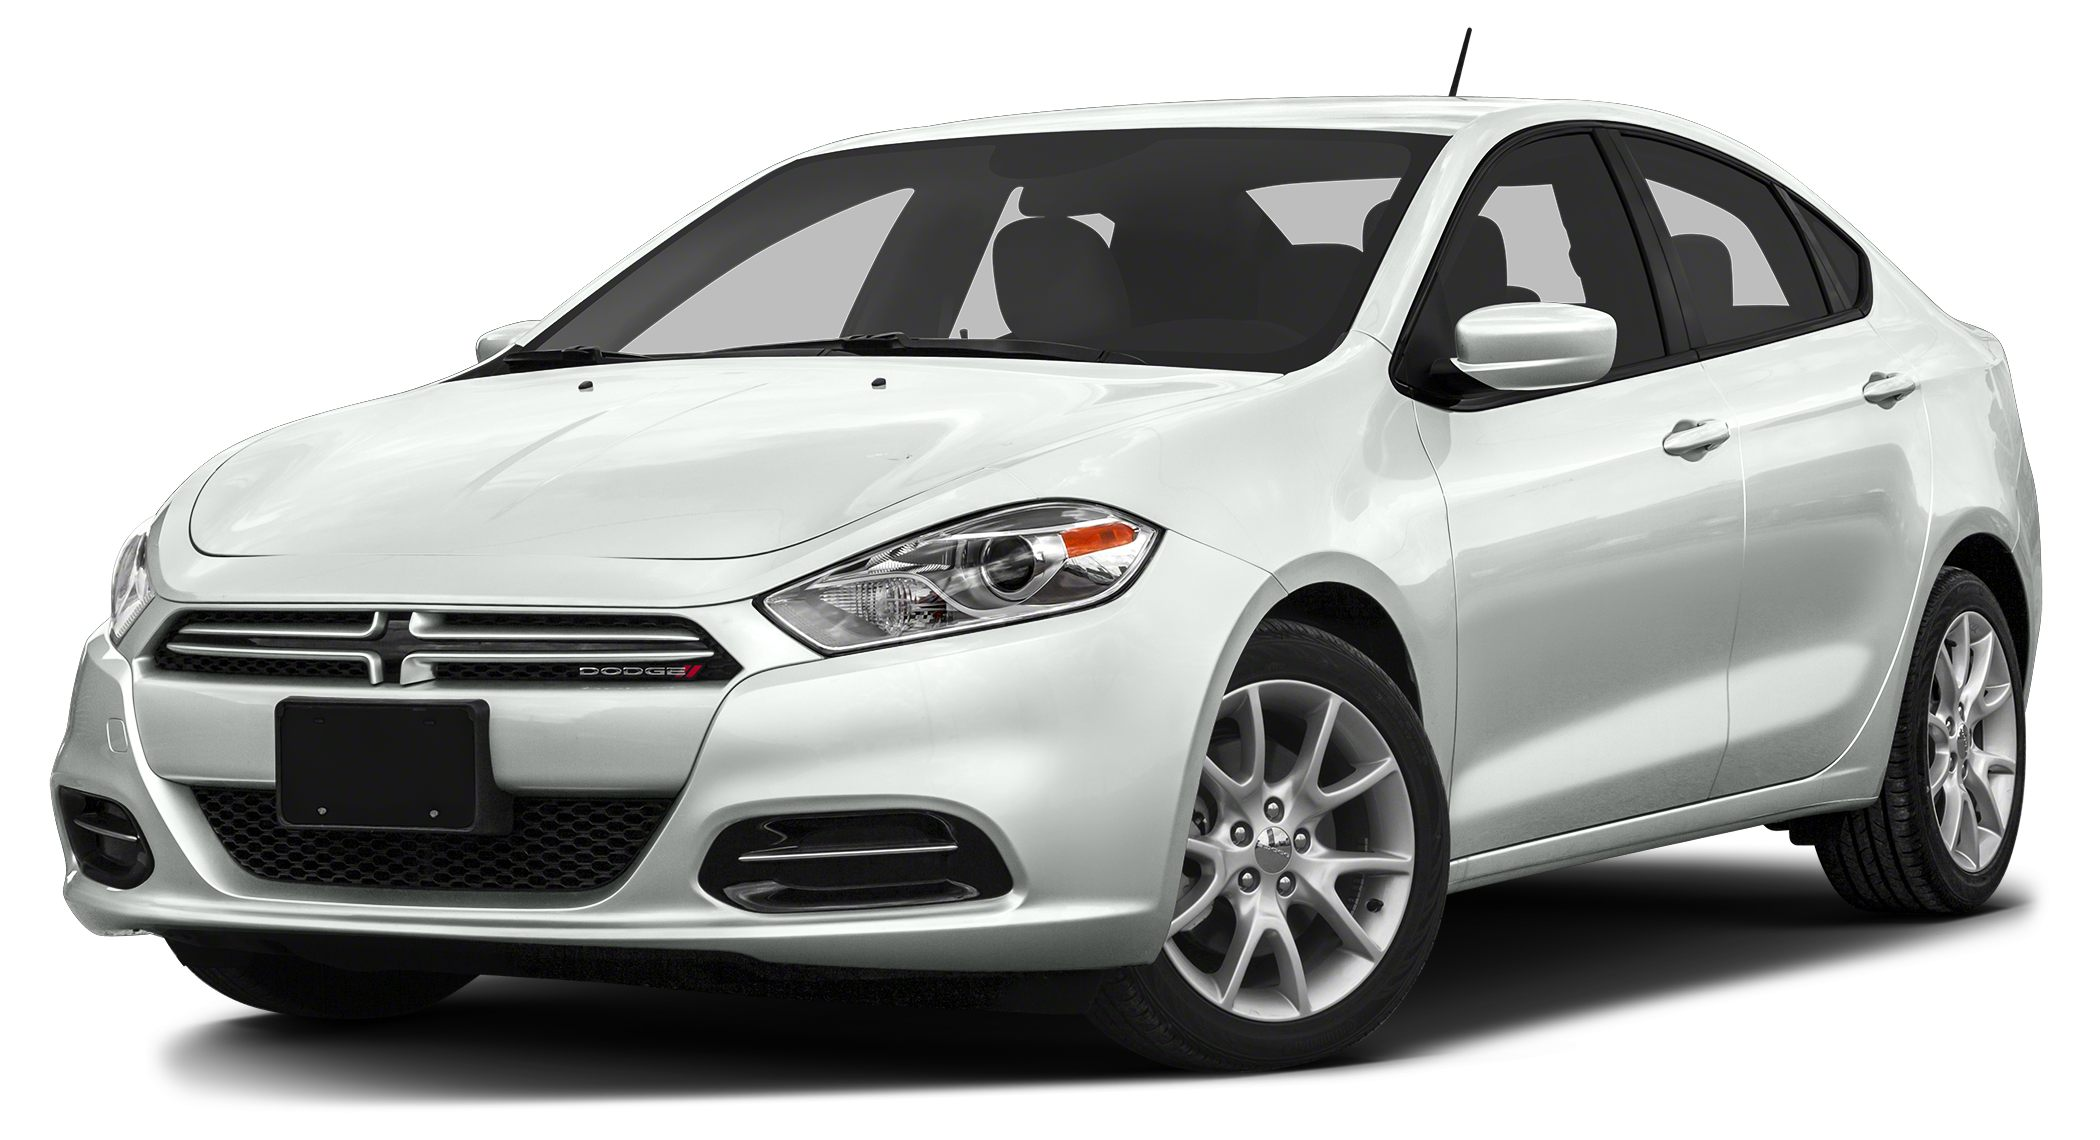 2015 Dodge Dart SXT For Internet Pricing and InformationPlease call Teresa Brown  866-387-3798It